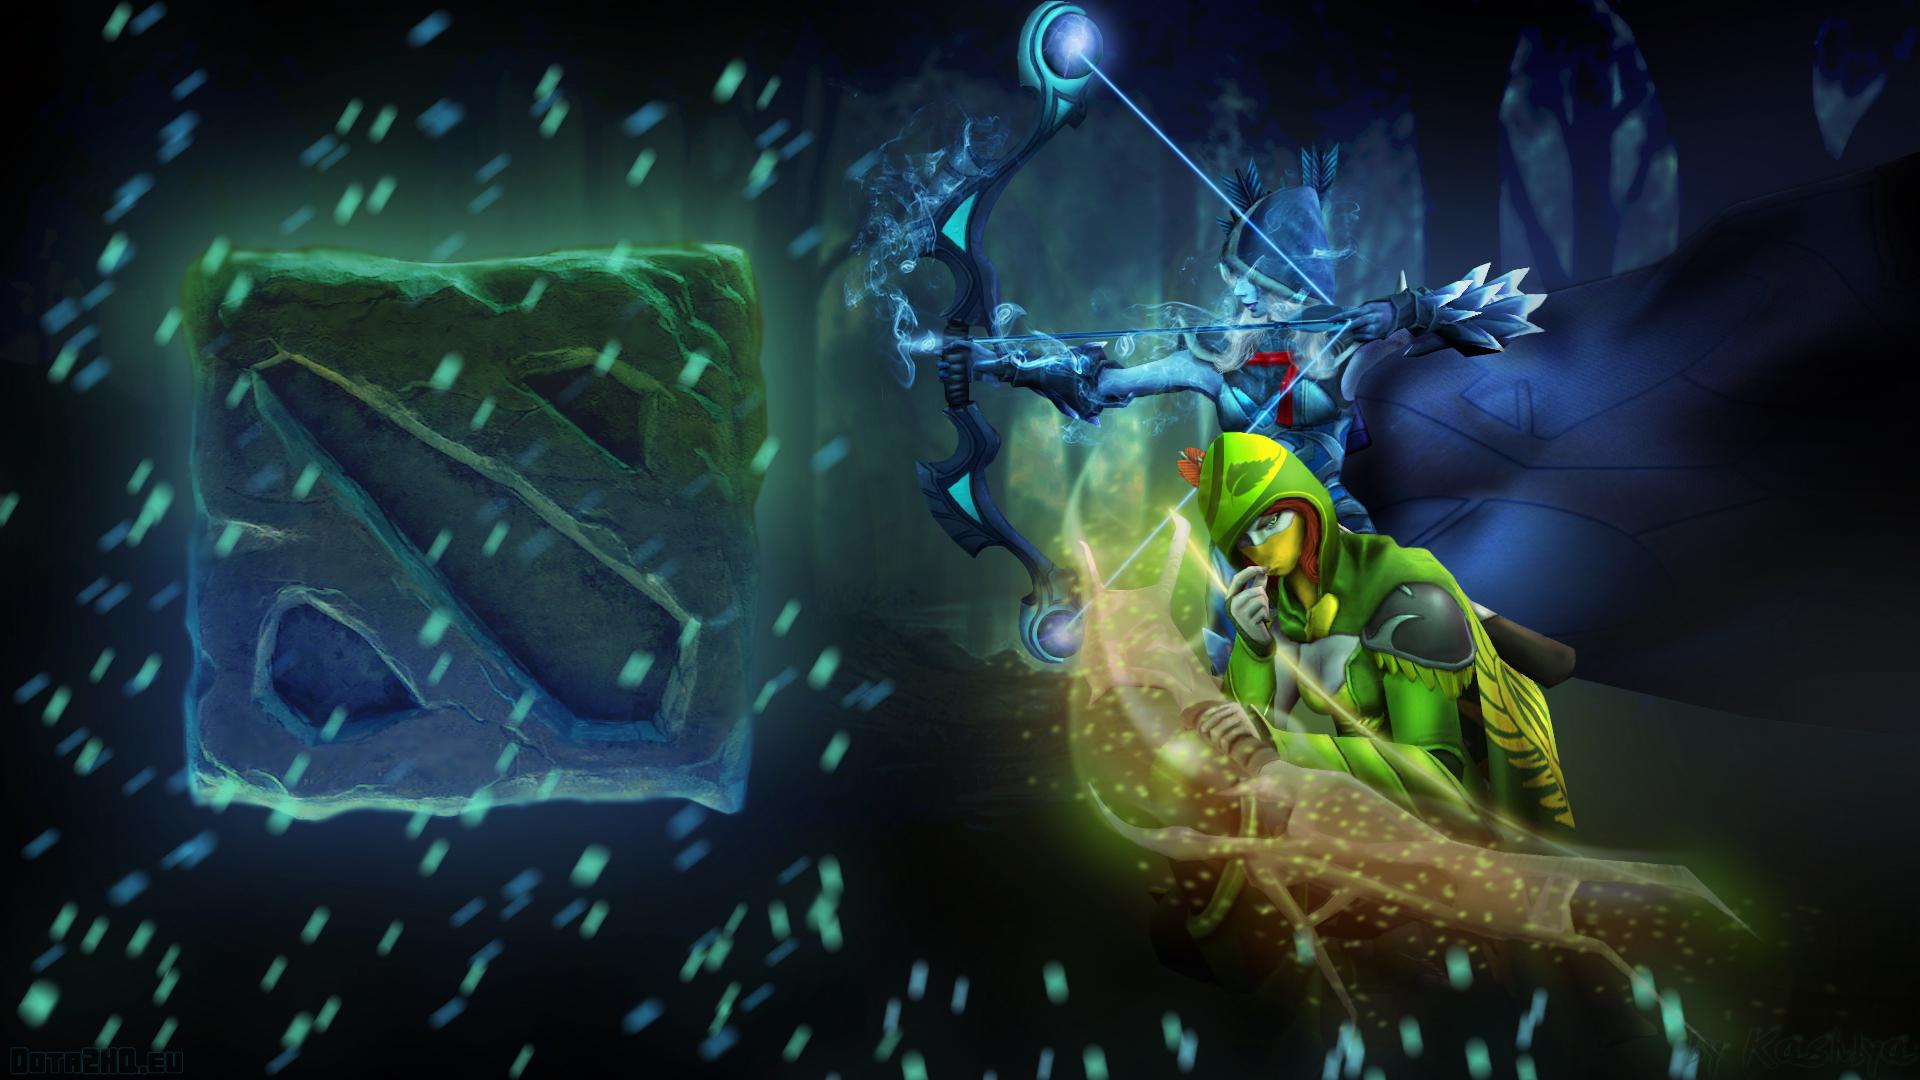 Pictures DOTA Drow Ranger Archers Warriors Fantasy Games Hood